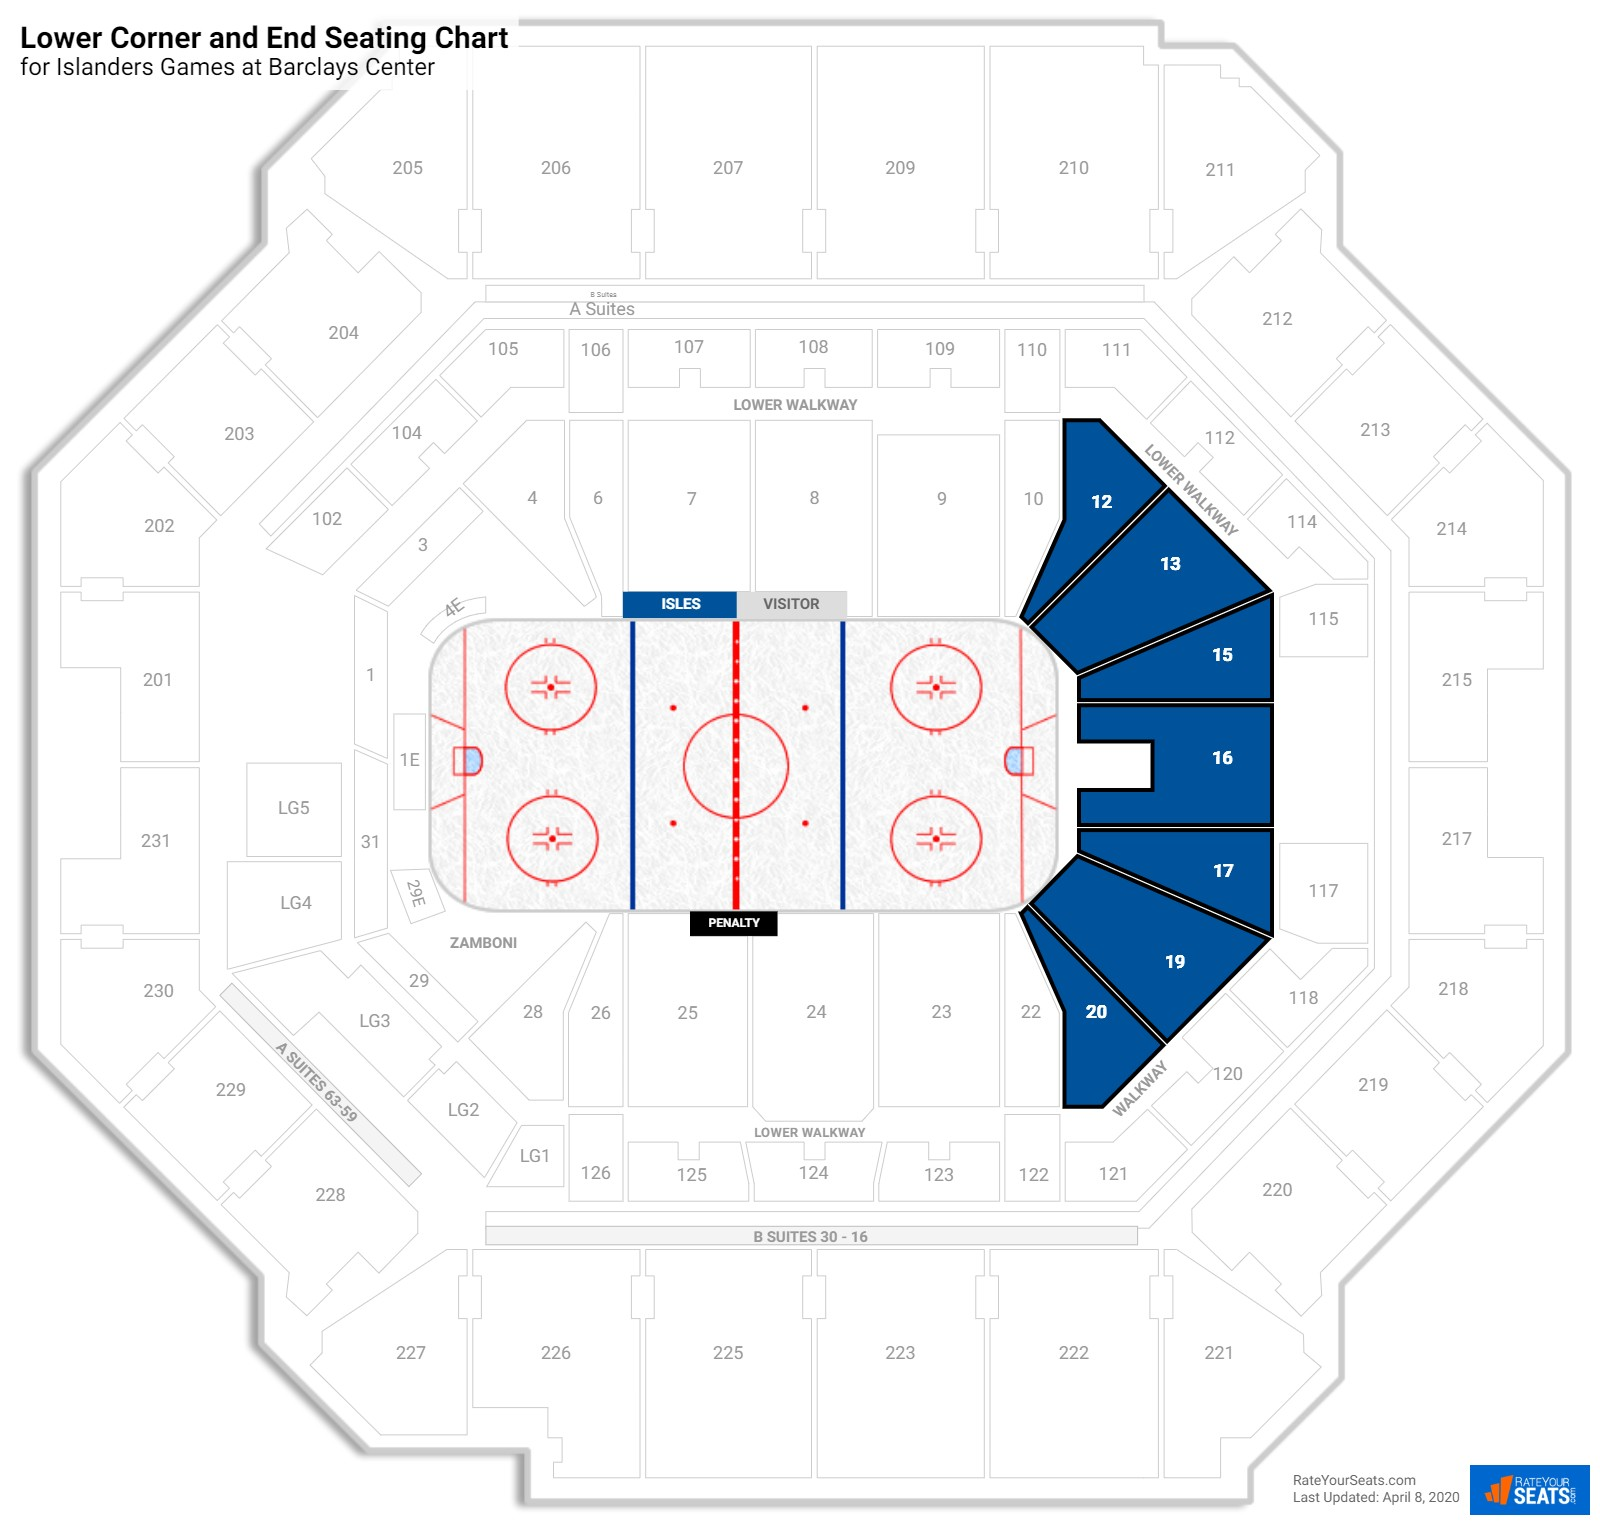 Barclays Center Lower East Side seating chart